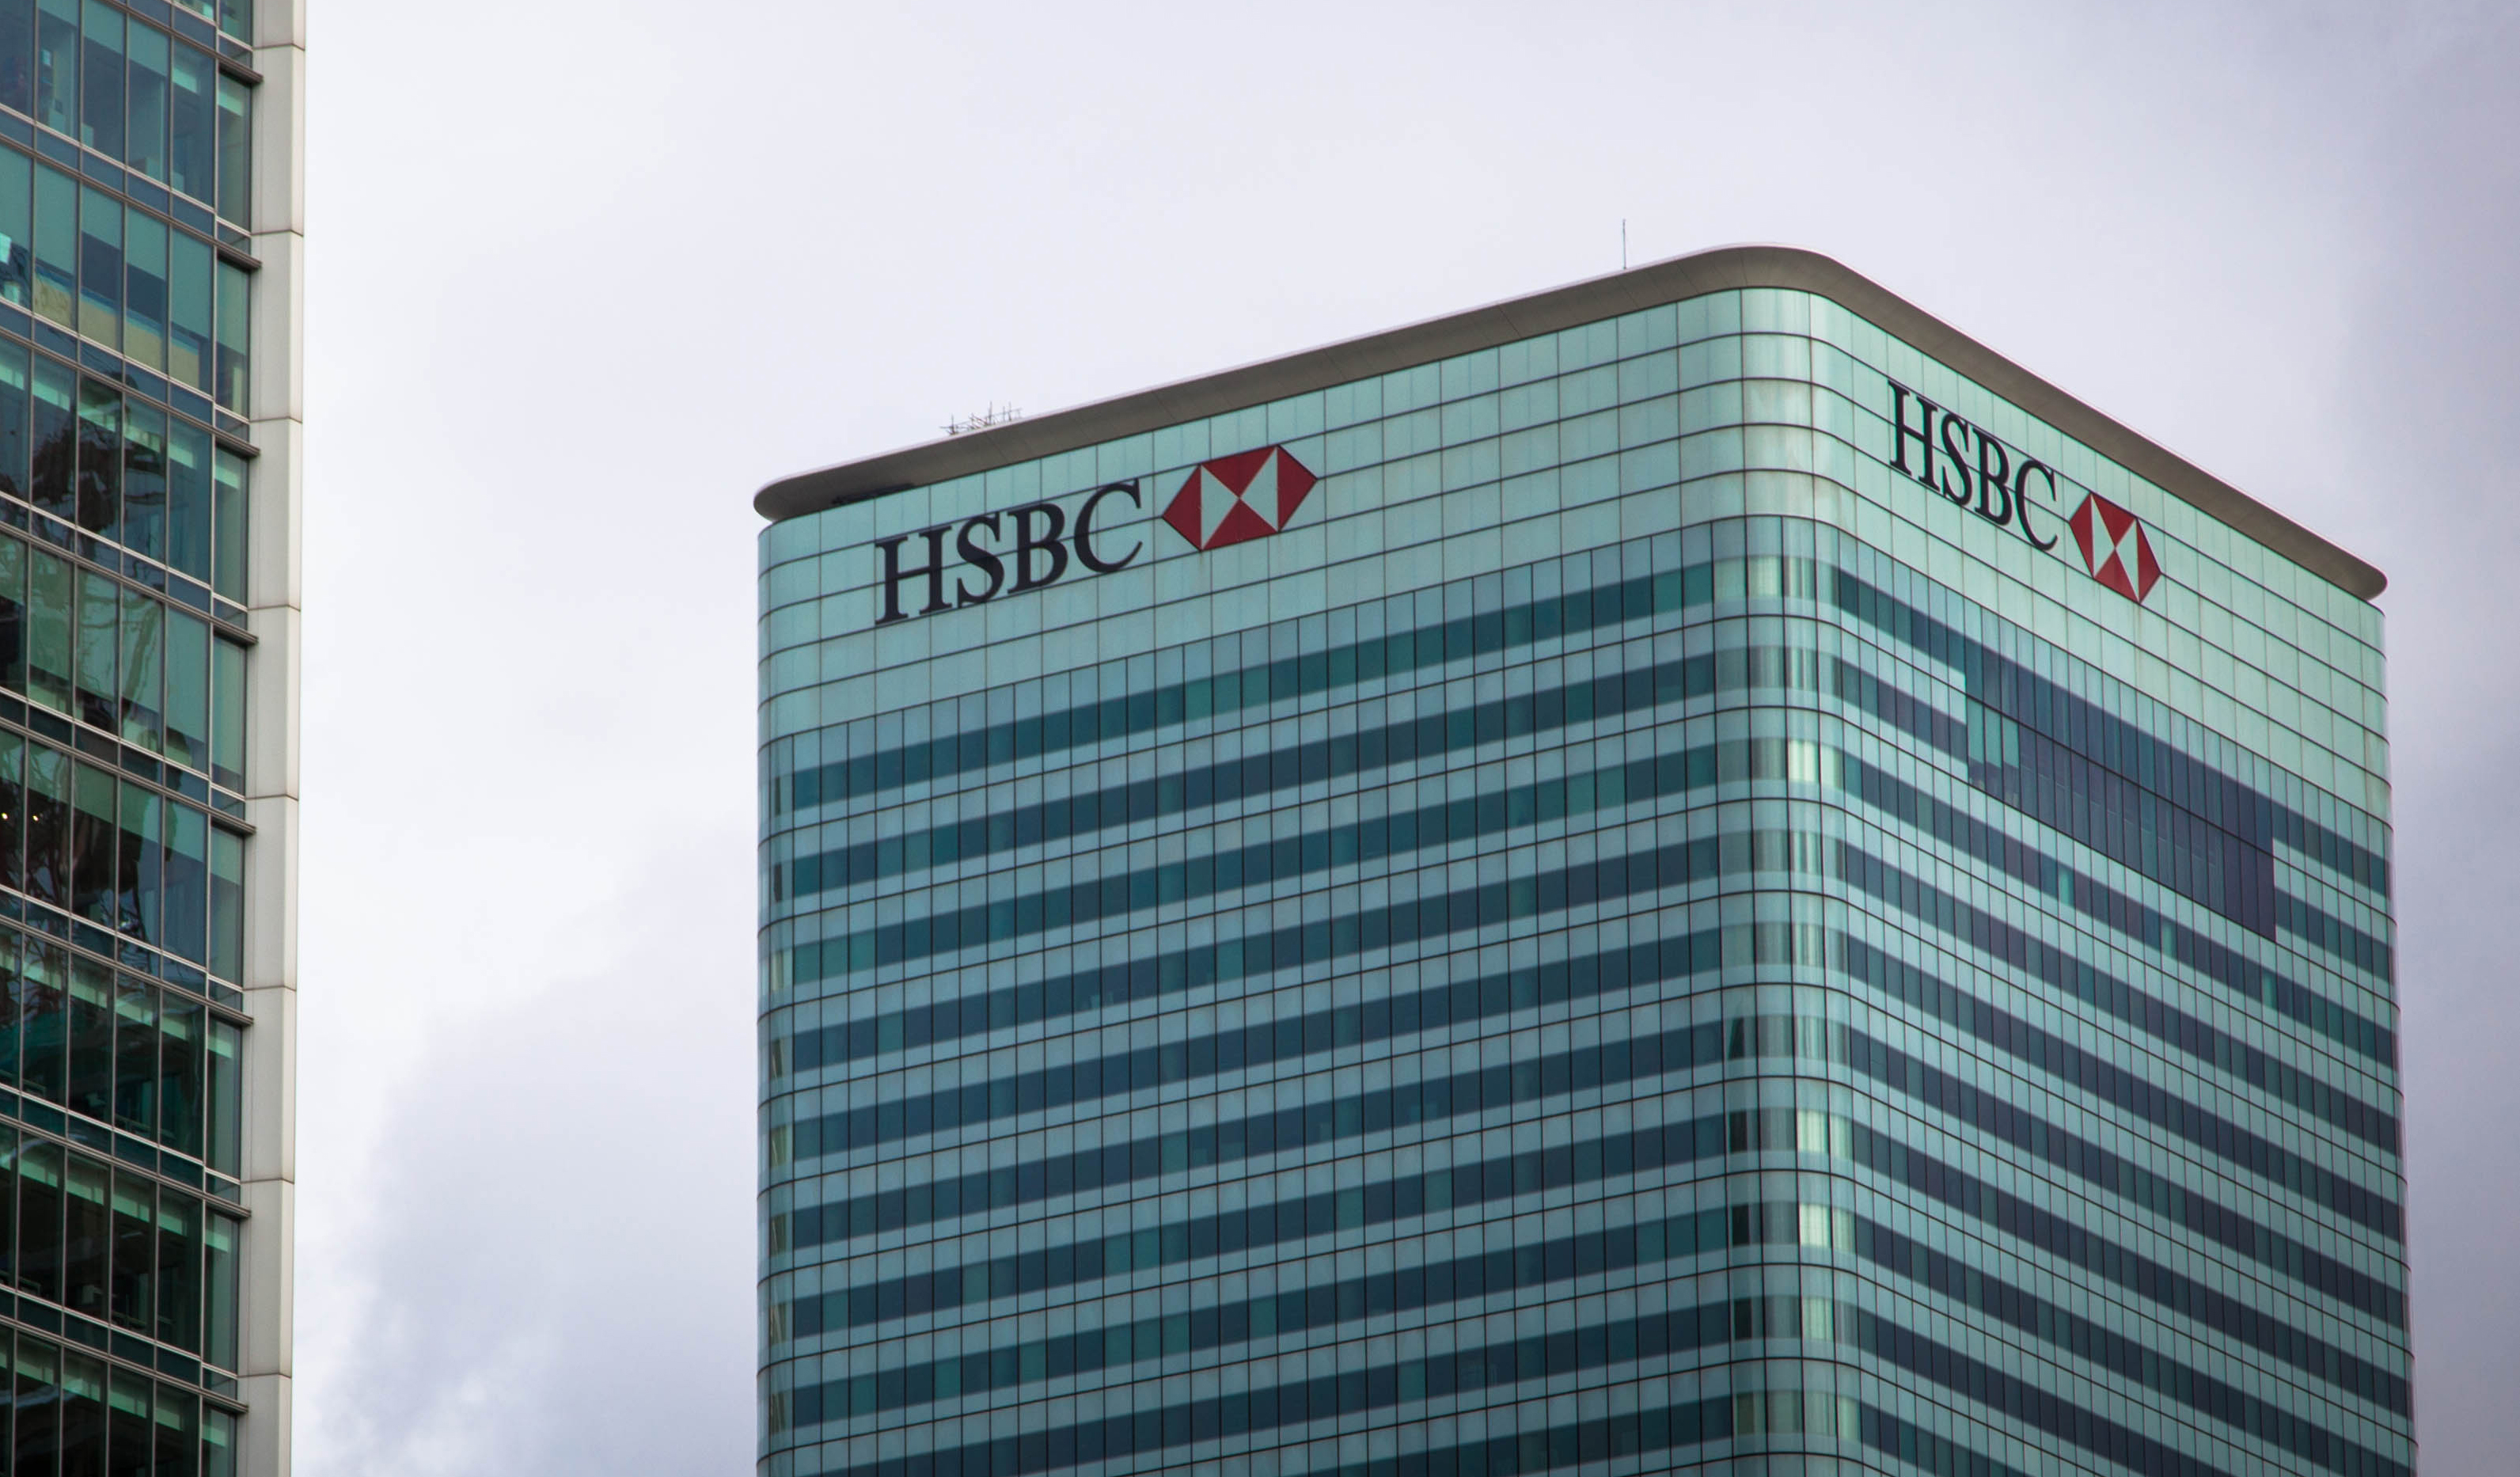 HSBC launches £6bn business growth fund